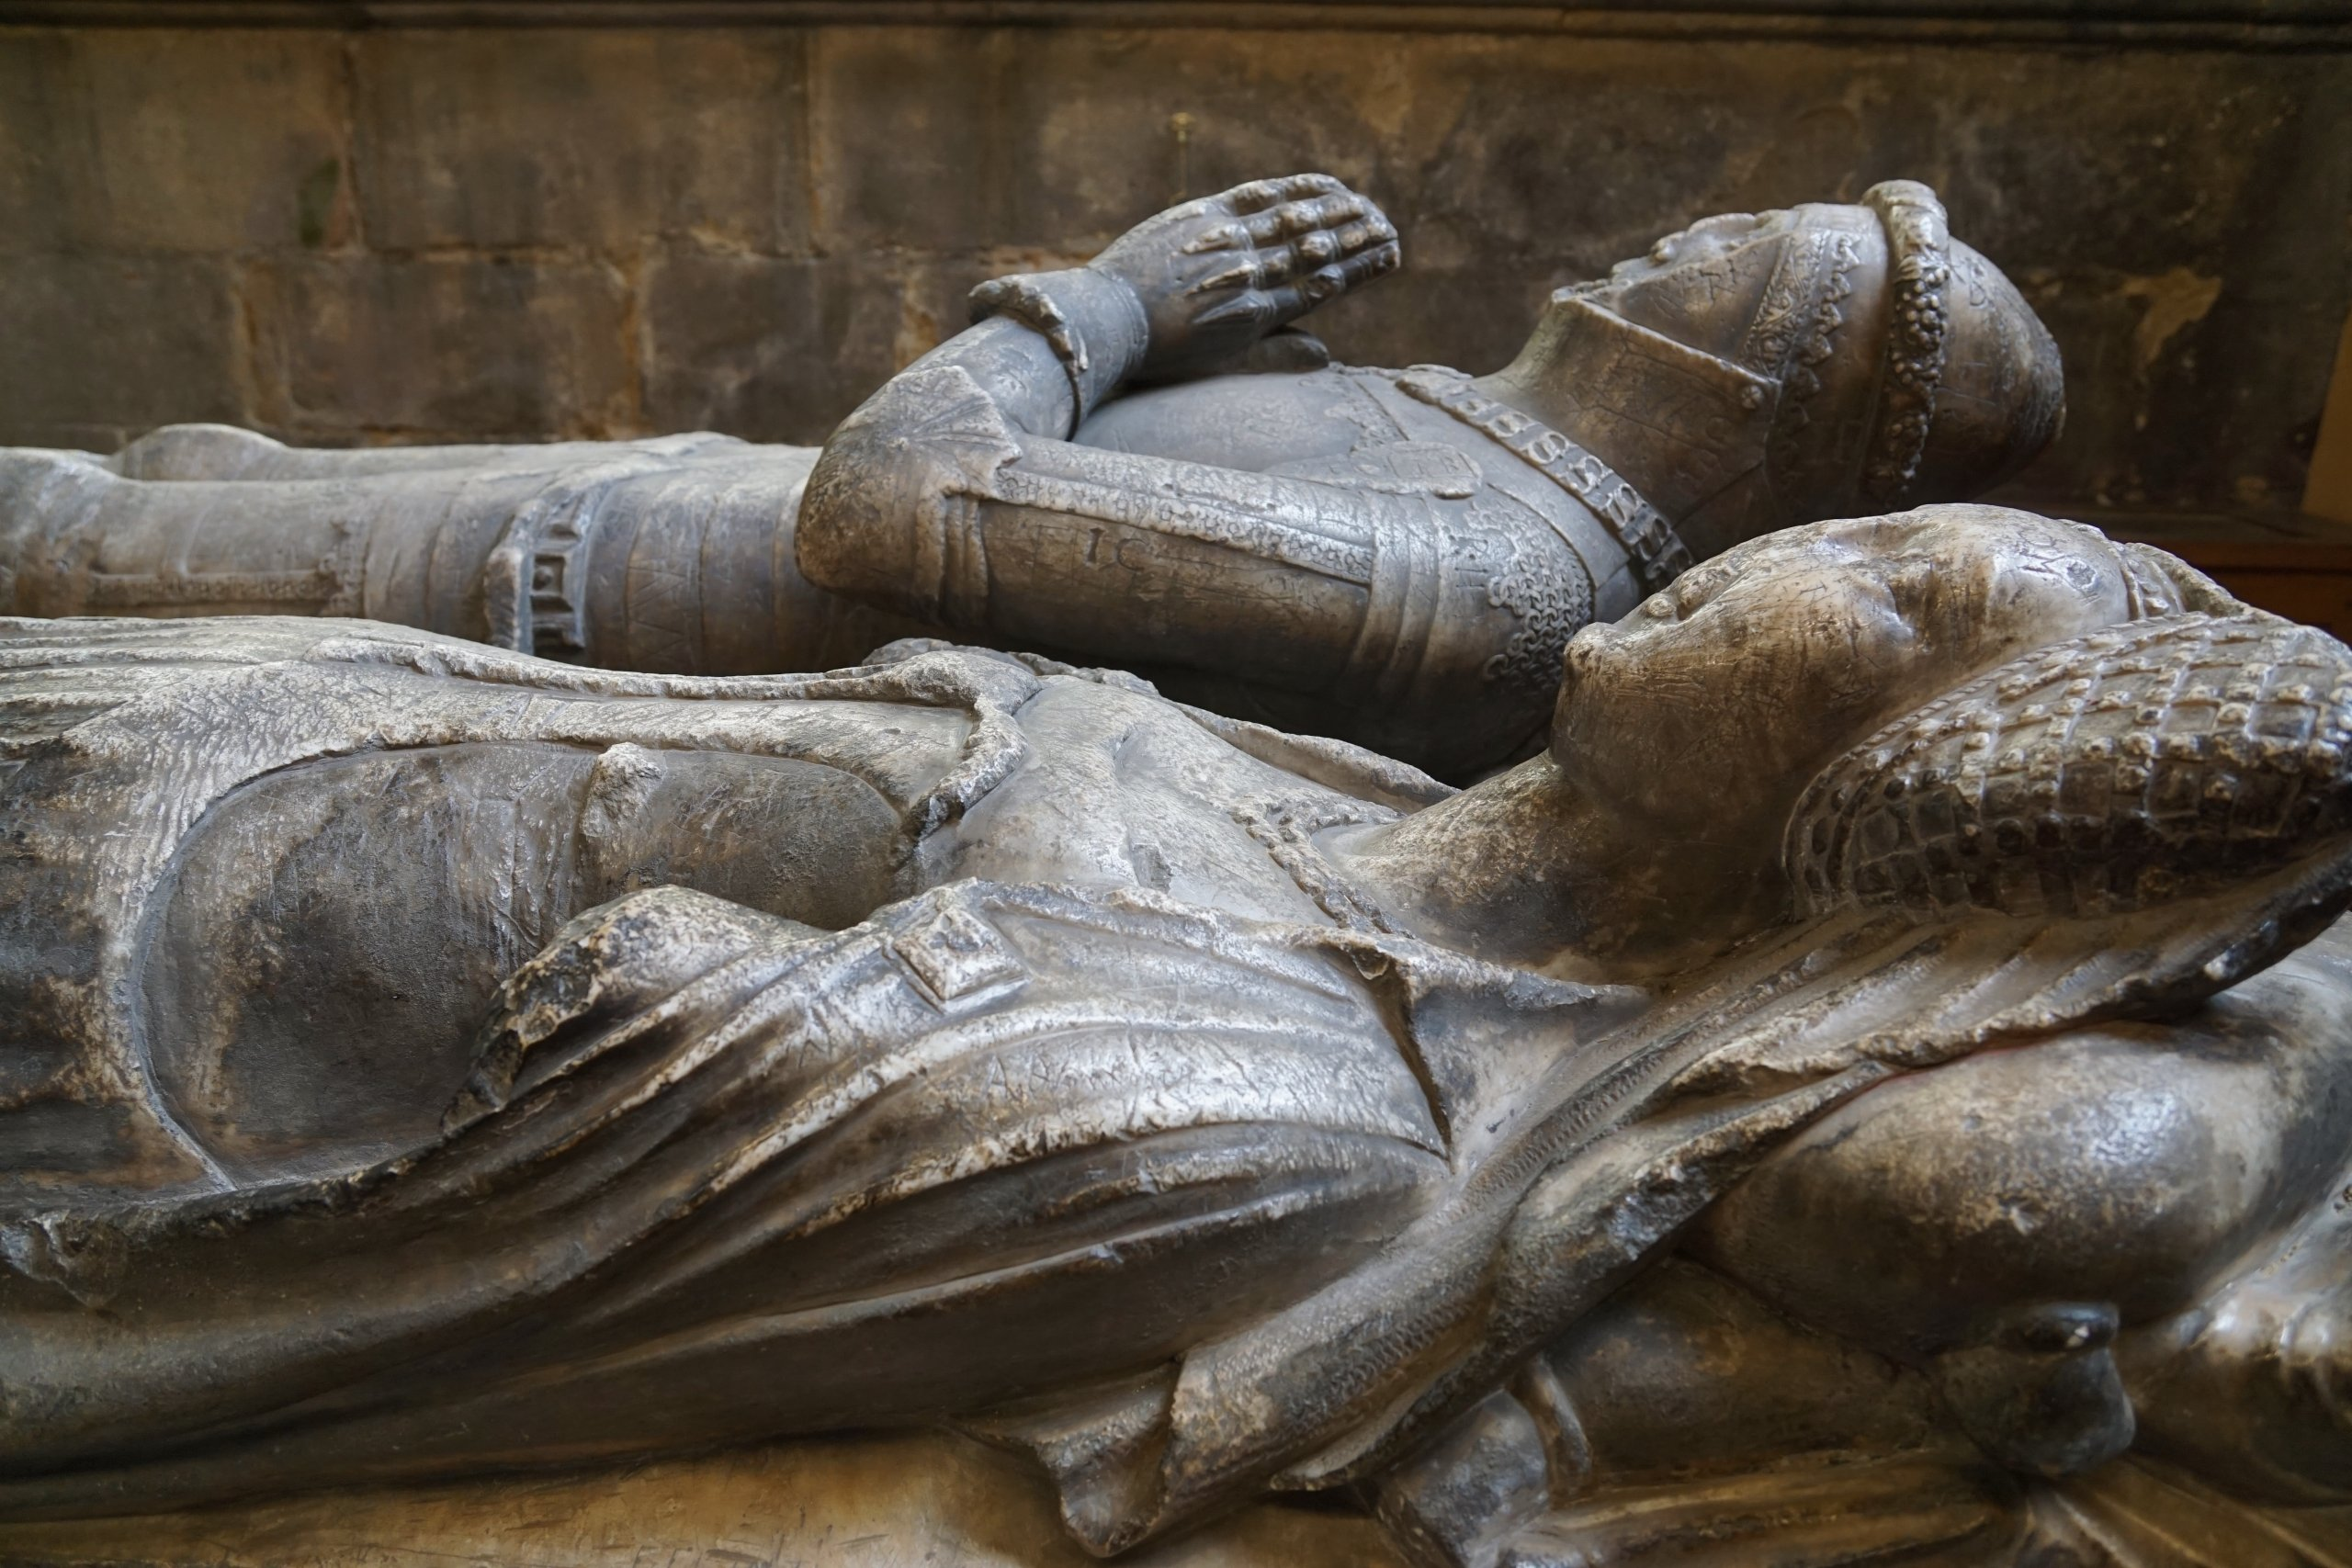 Bronze busts of sleeping man and woman, Medieval style burial inside church